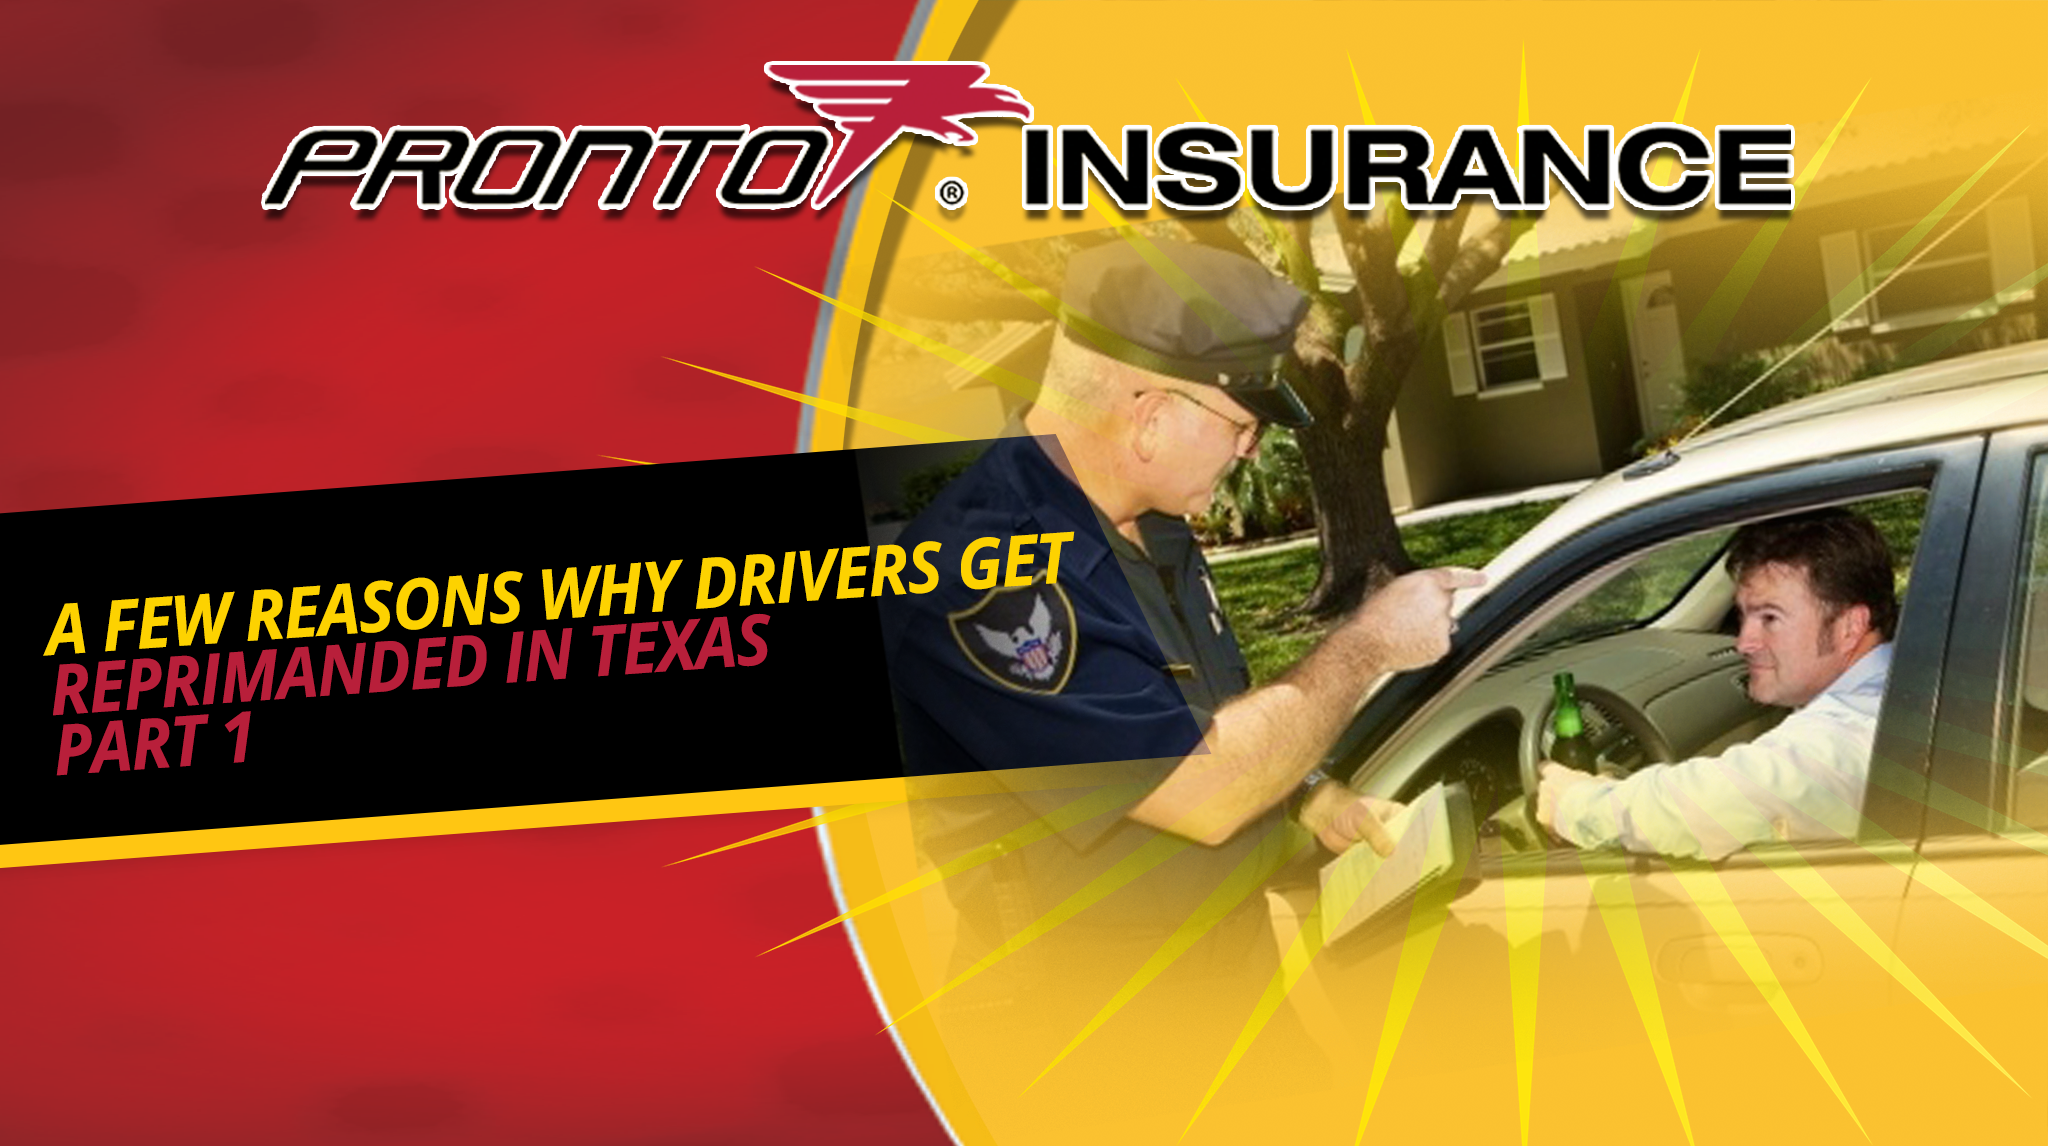 A Few Reasons Why Drivers Get Reprimanded in Texas